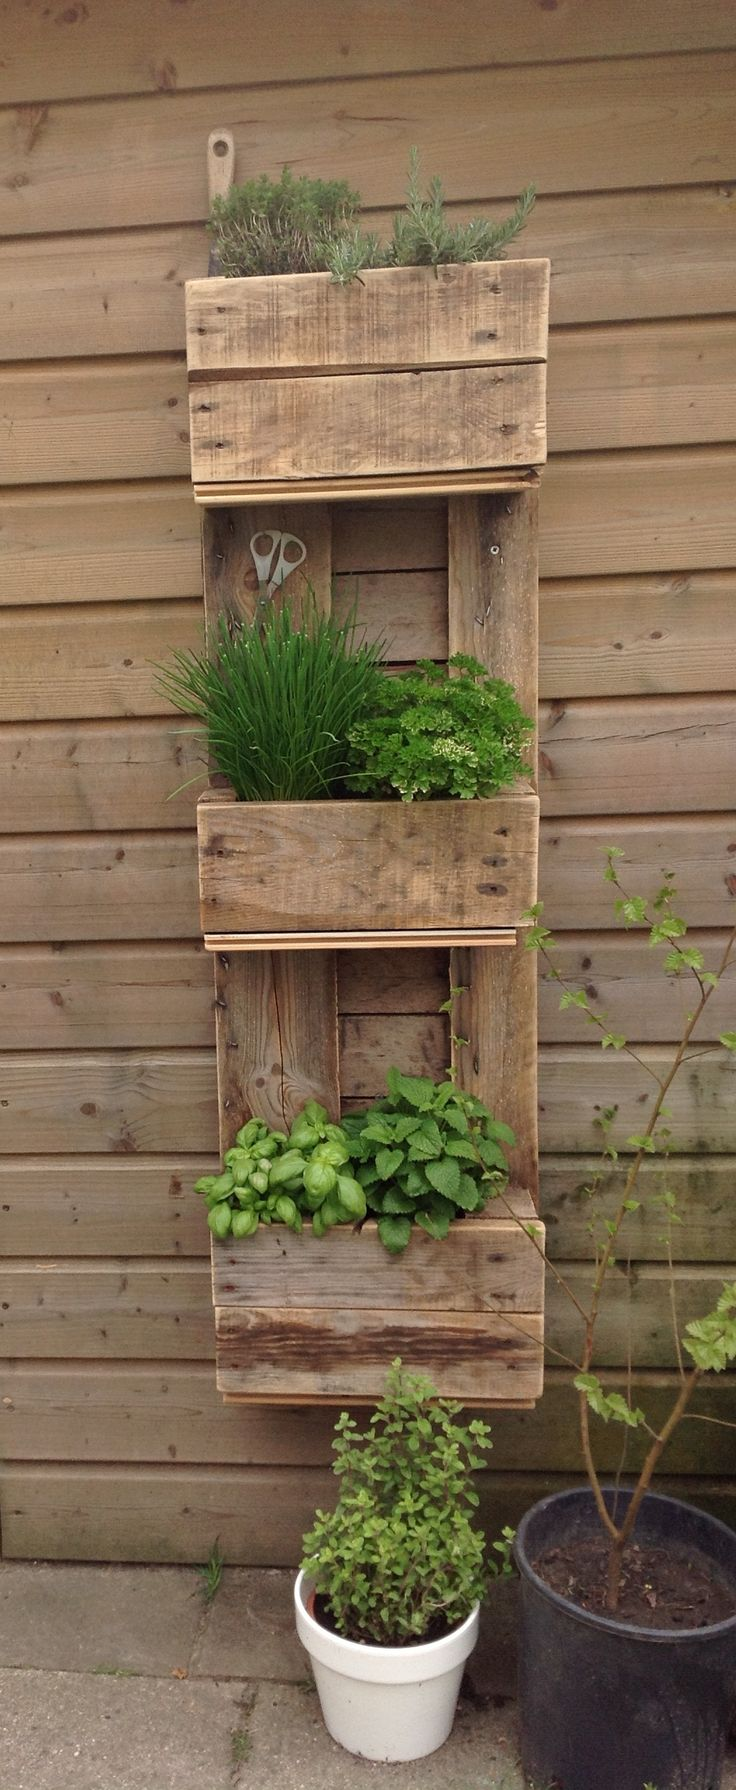 PALLET PLANTERS - http://dunway.info/pallets/index.html